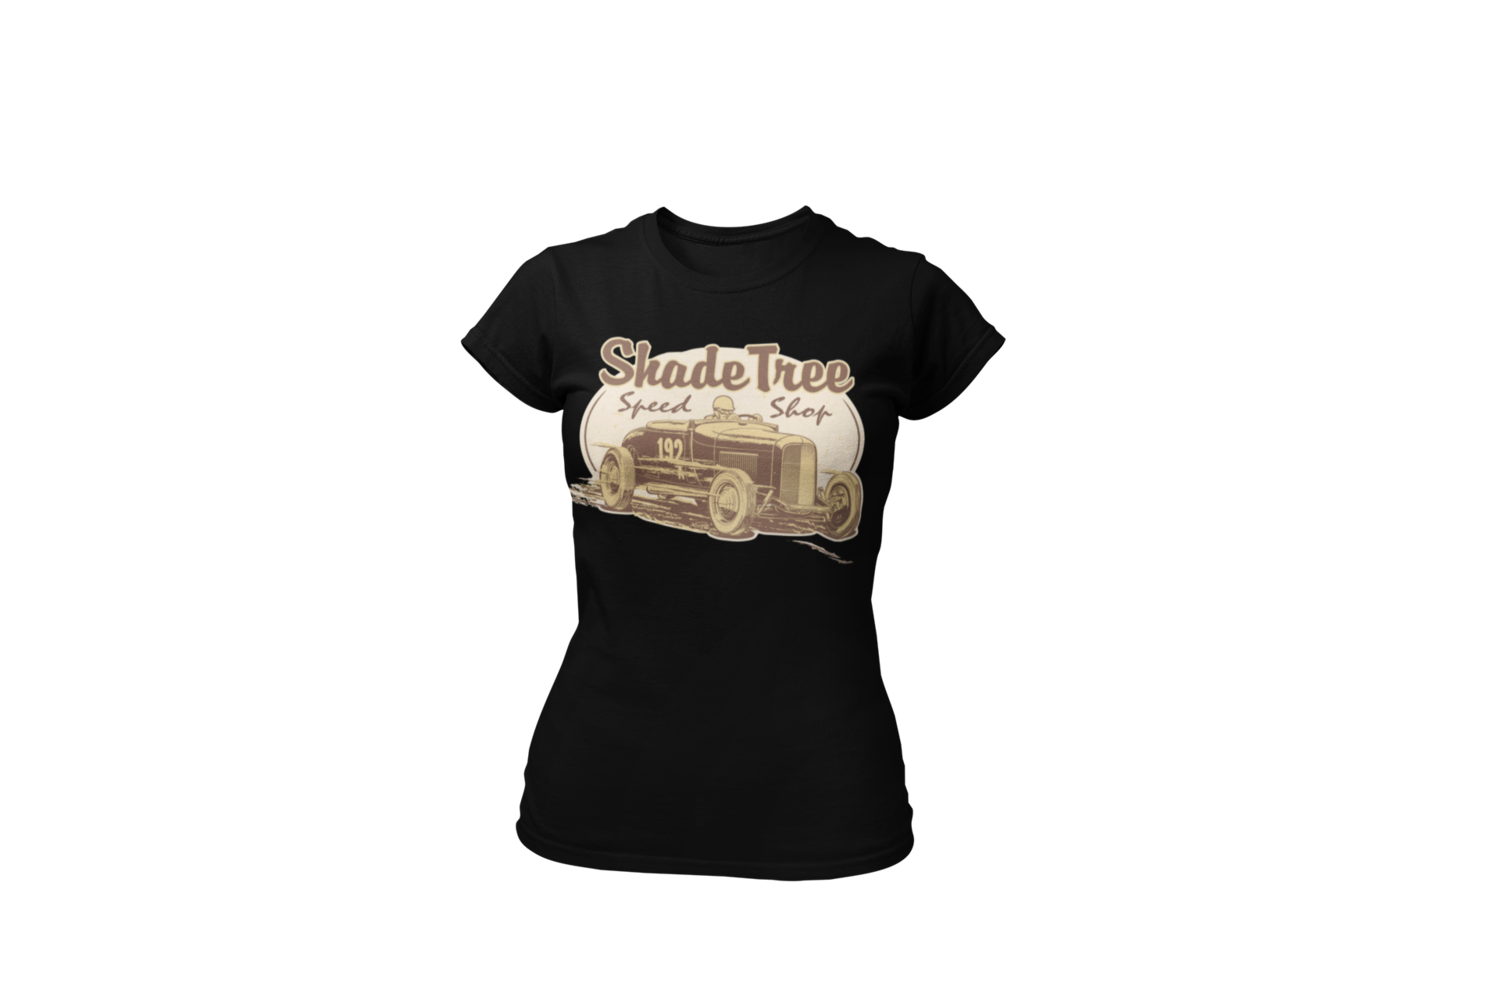 """SHADE TREE SPEED SHOP """"El Mirage"""" T-SHIRT WOMAN by Ger """"Dutch Courage"""" Peters artwork"""